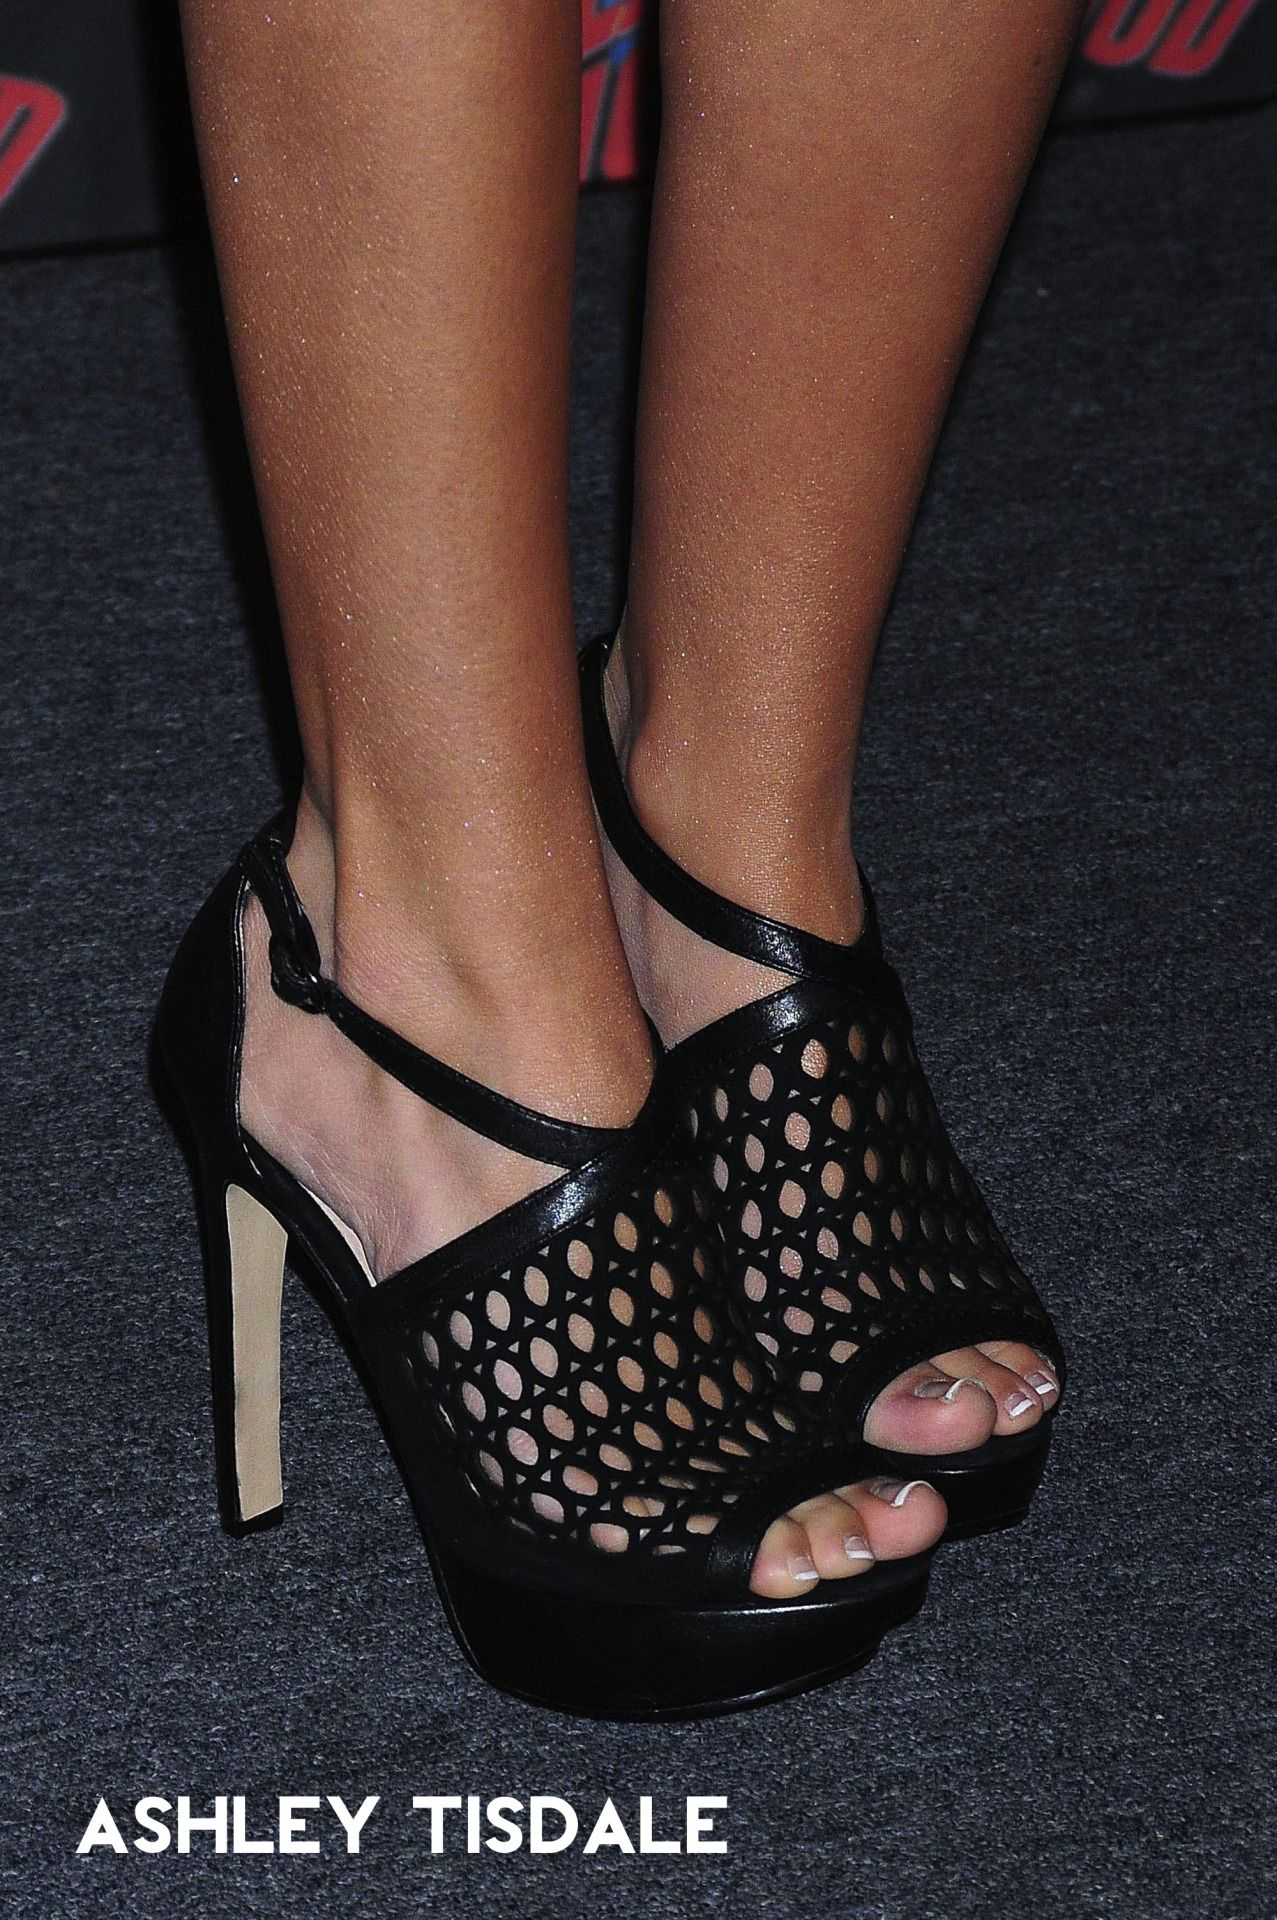 celebs-foot-fetish-pussy-photos